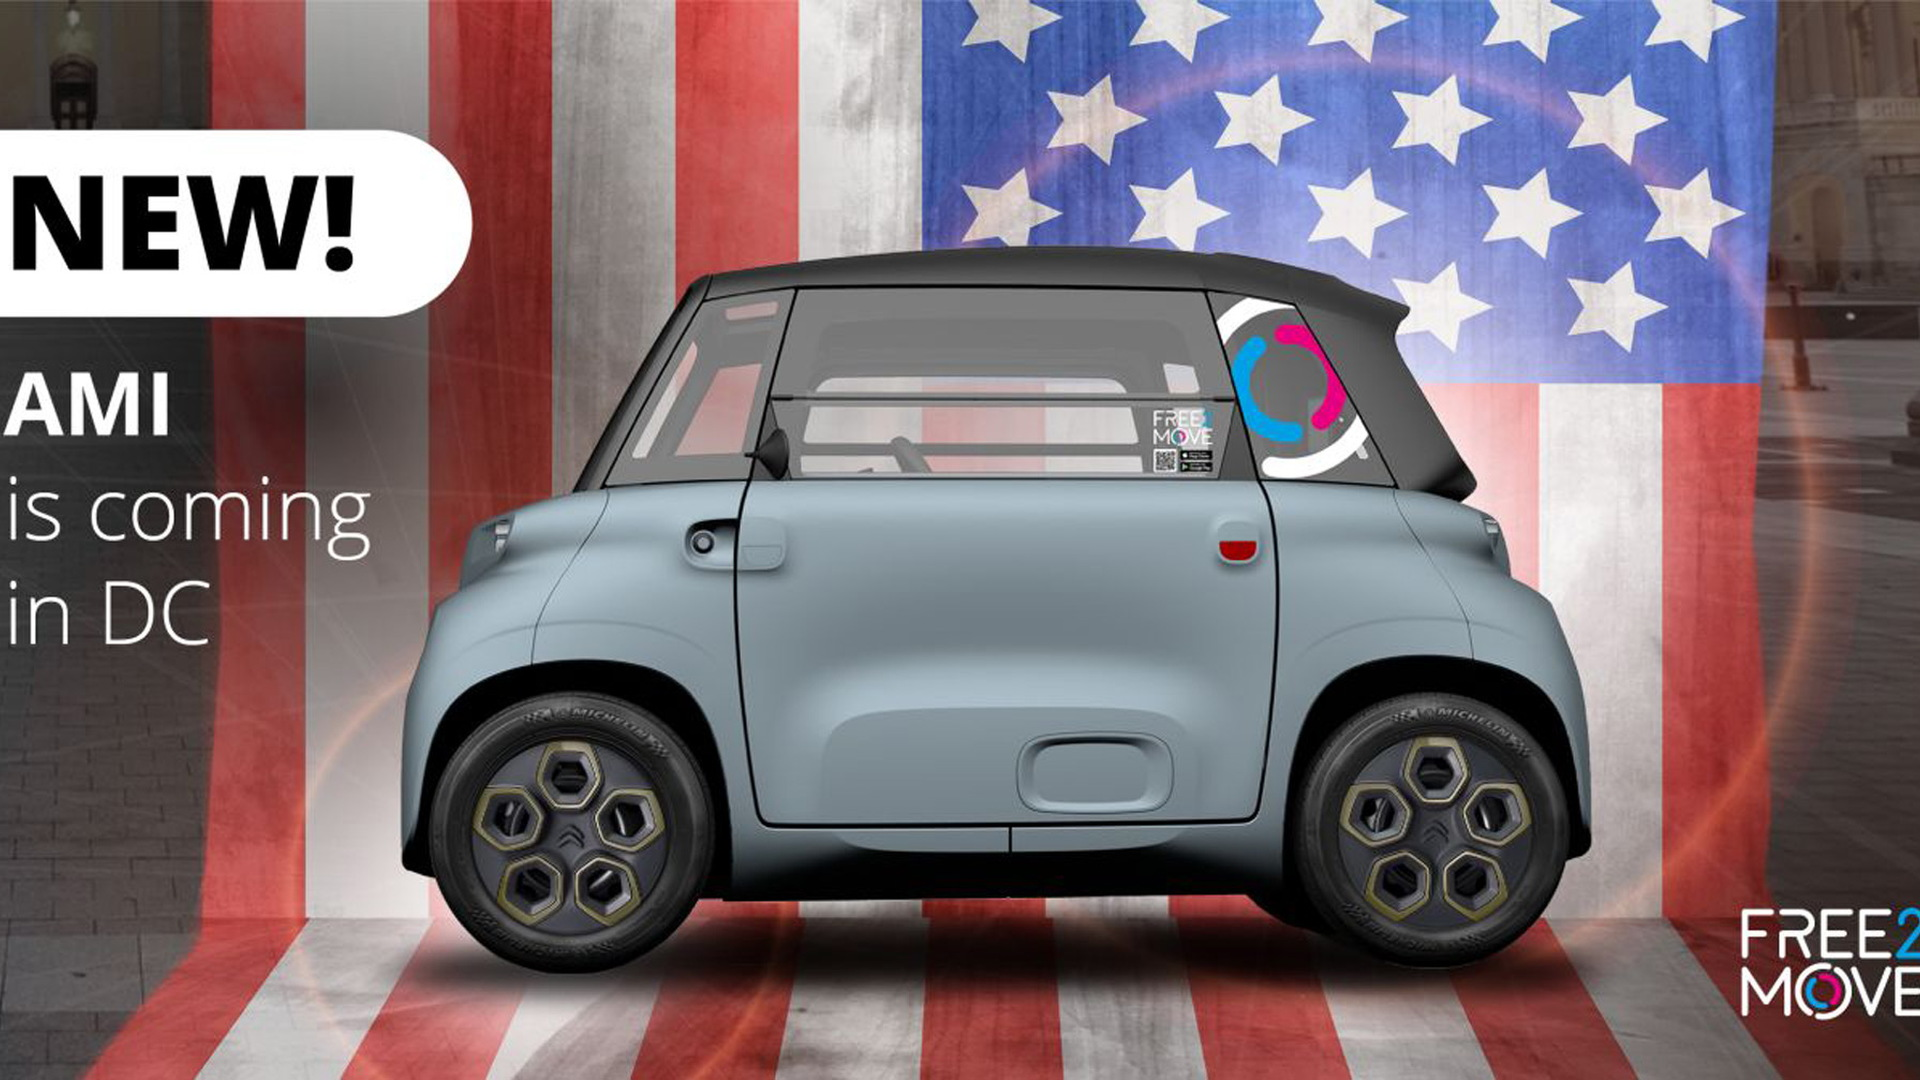 Citroen Ami to join Free2Move fleet in United States